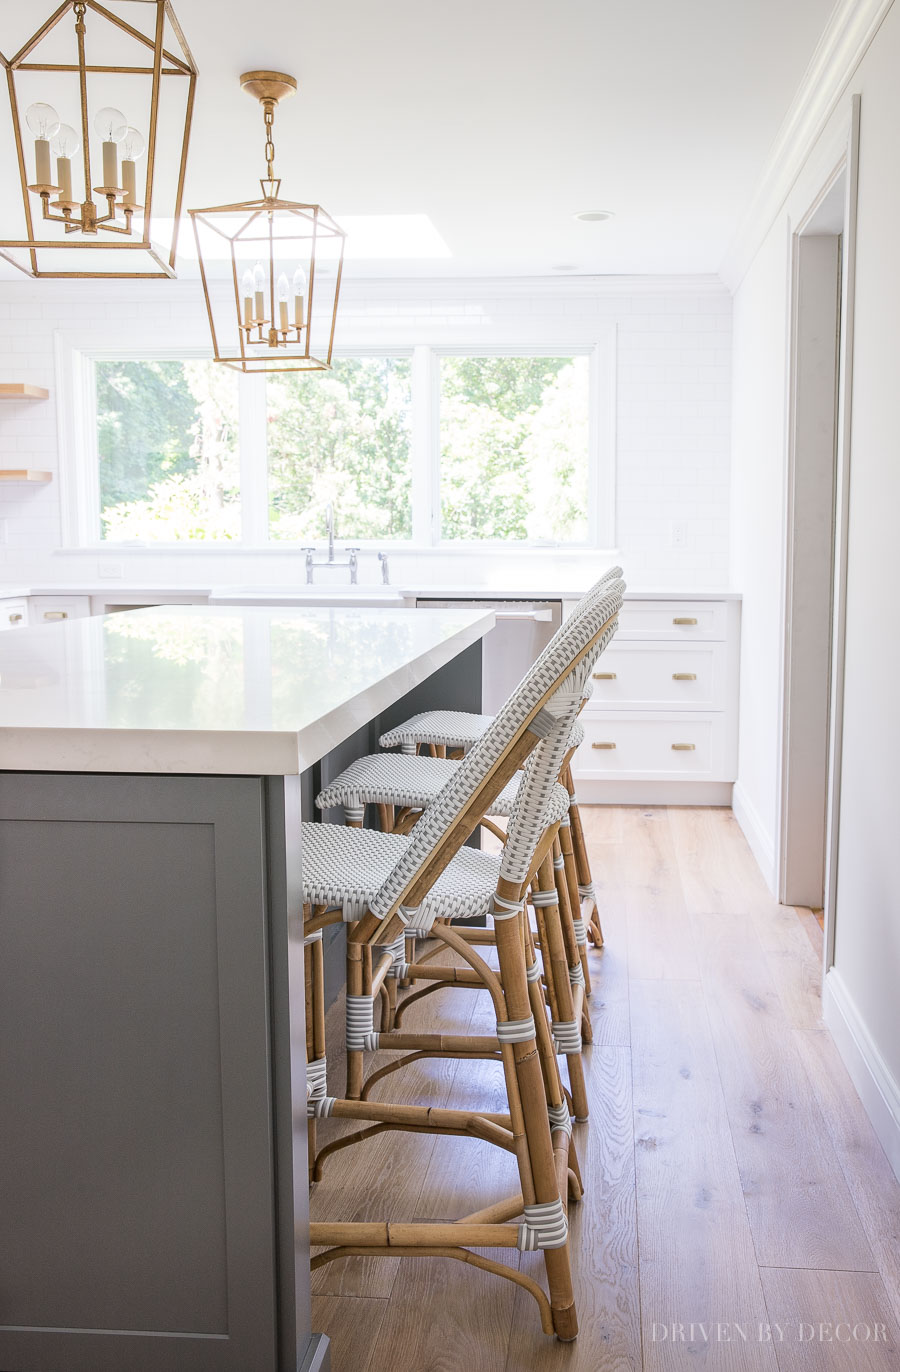 Dark gray kitchen island with woven counter stools and brass light fixtures